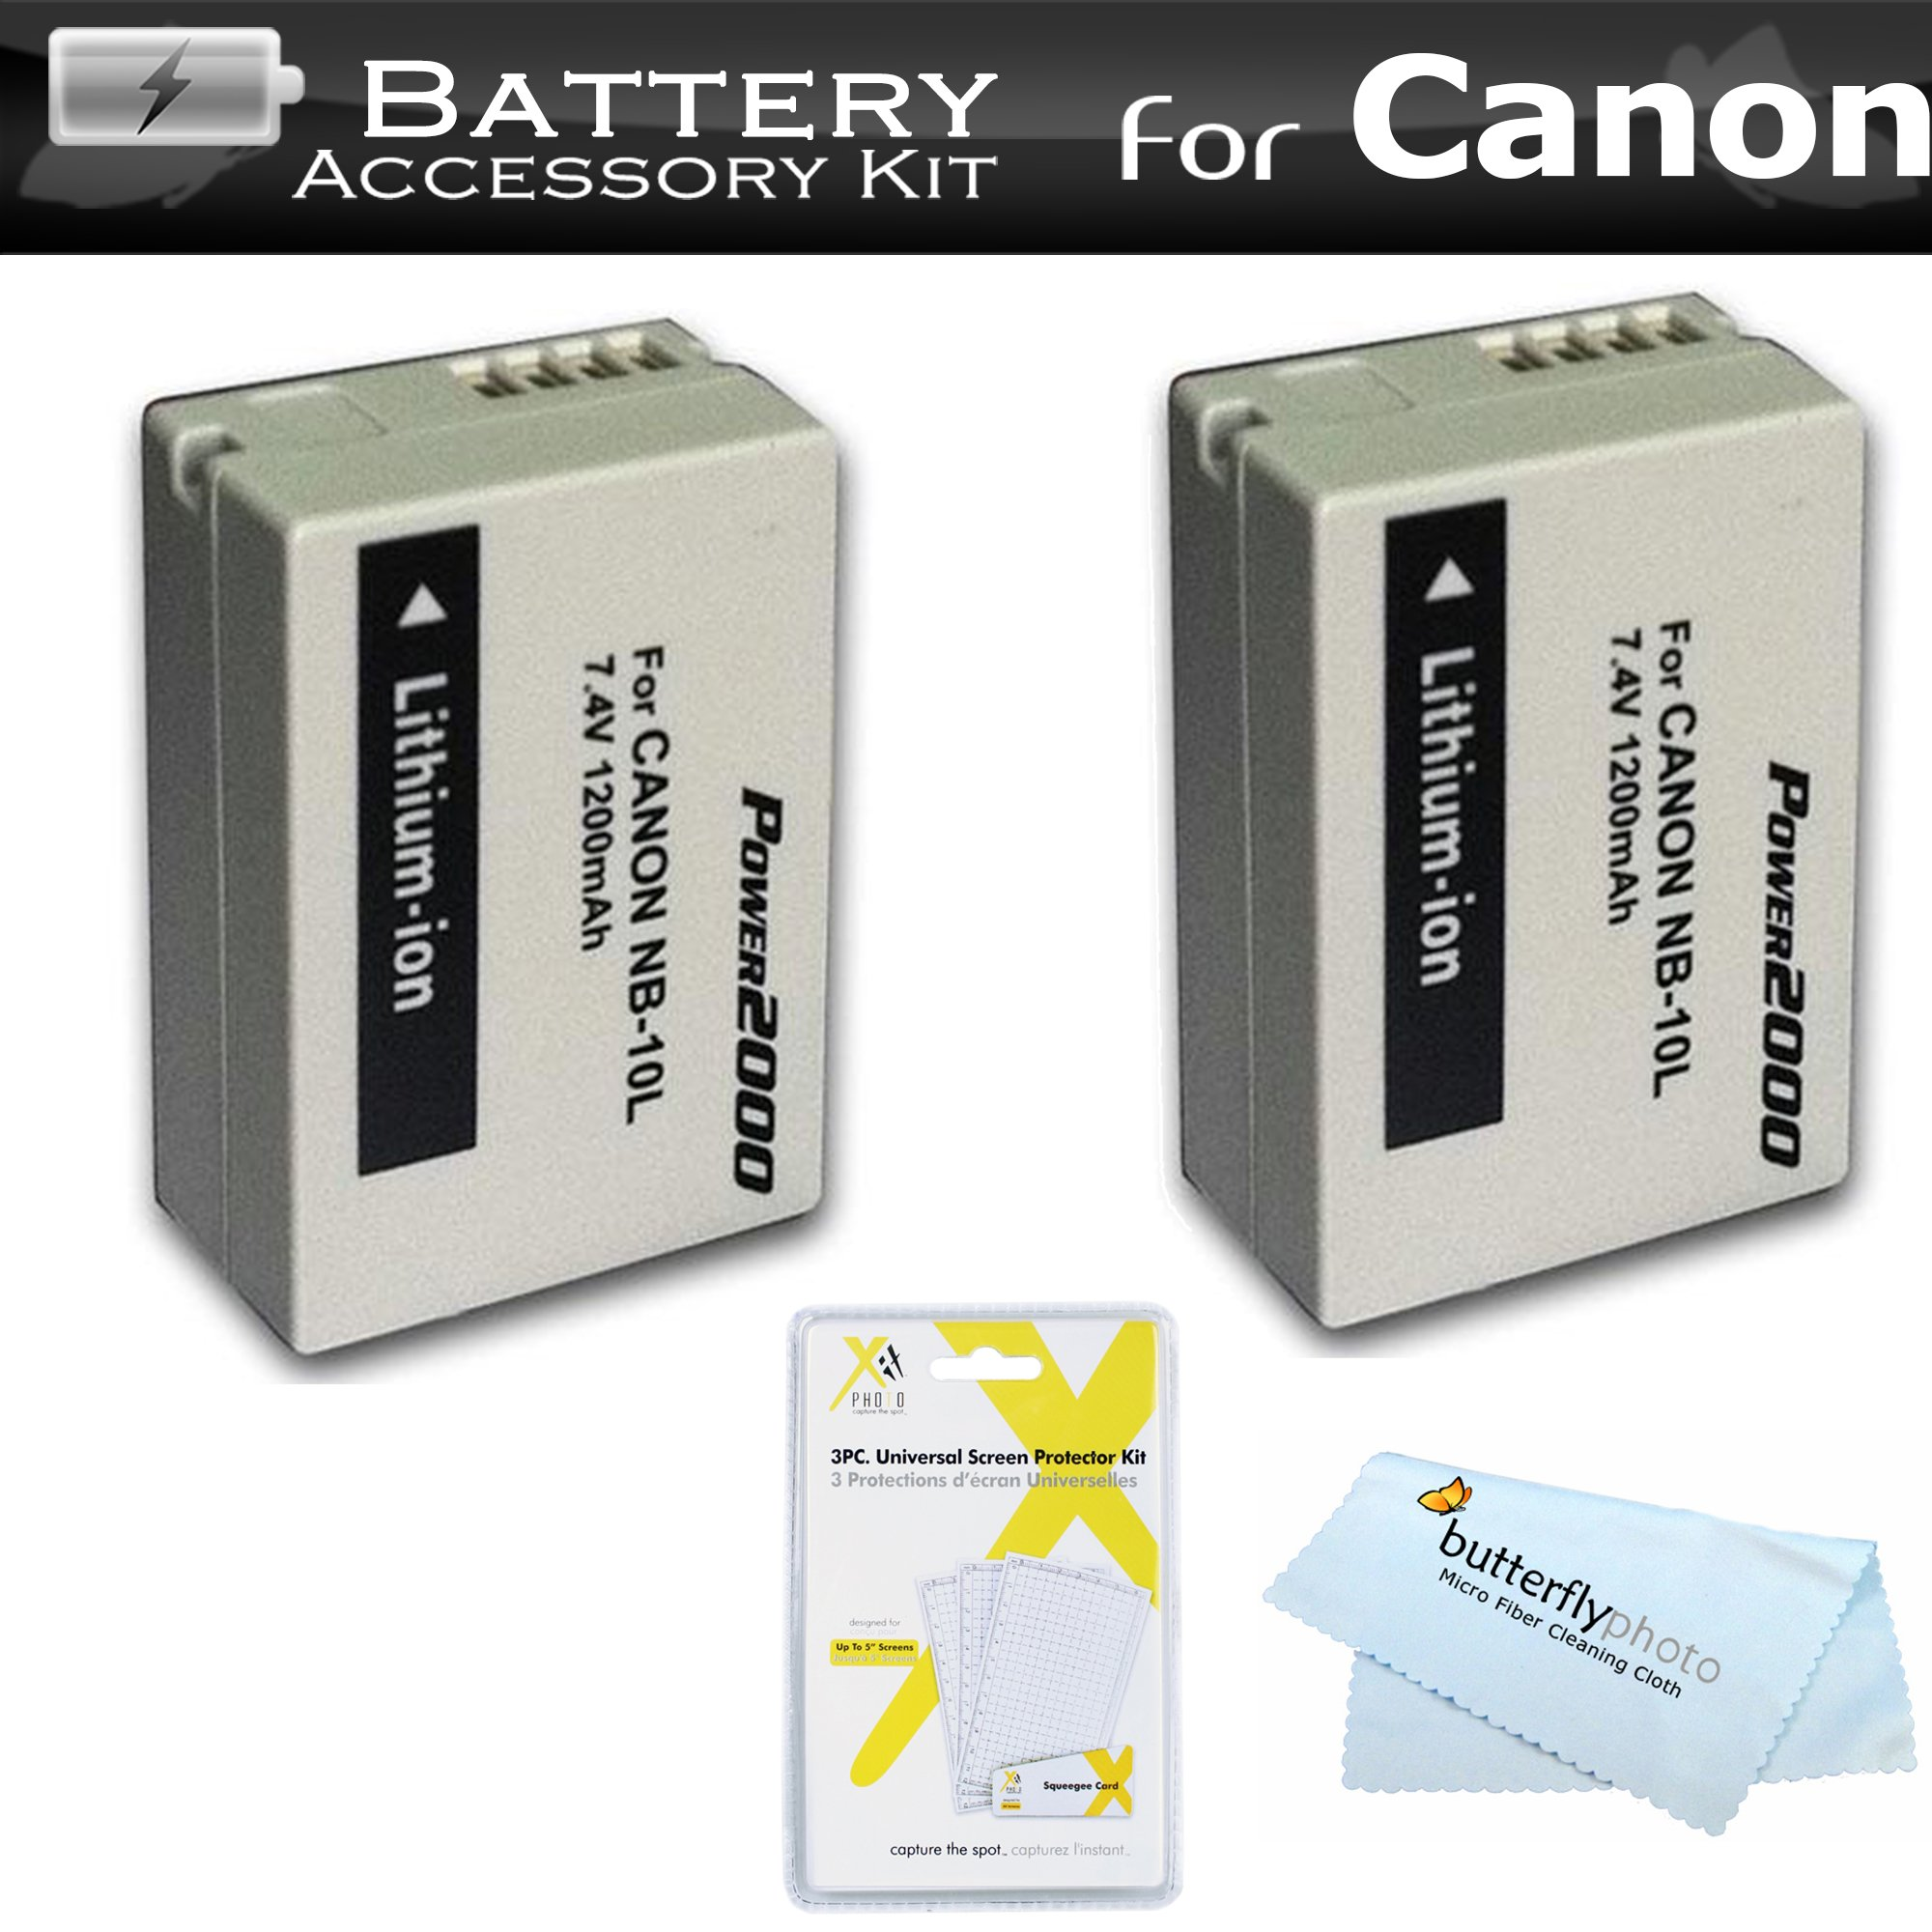 2 Pack NB-10L Battery Kit For Canon PowerShot SX40 HS, SX50 HS, SX50HS, G1 X G1X, G15, G16, SX60HS, SX60 HS, G3 X Digital Camera Includes 2 Extended Replacement (1200Mah) NB-10L Batteries + More